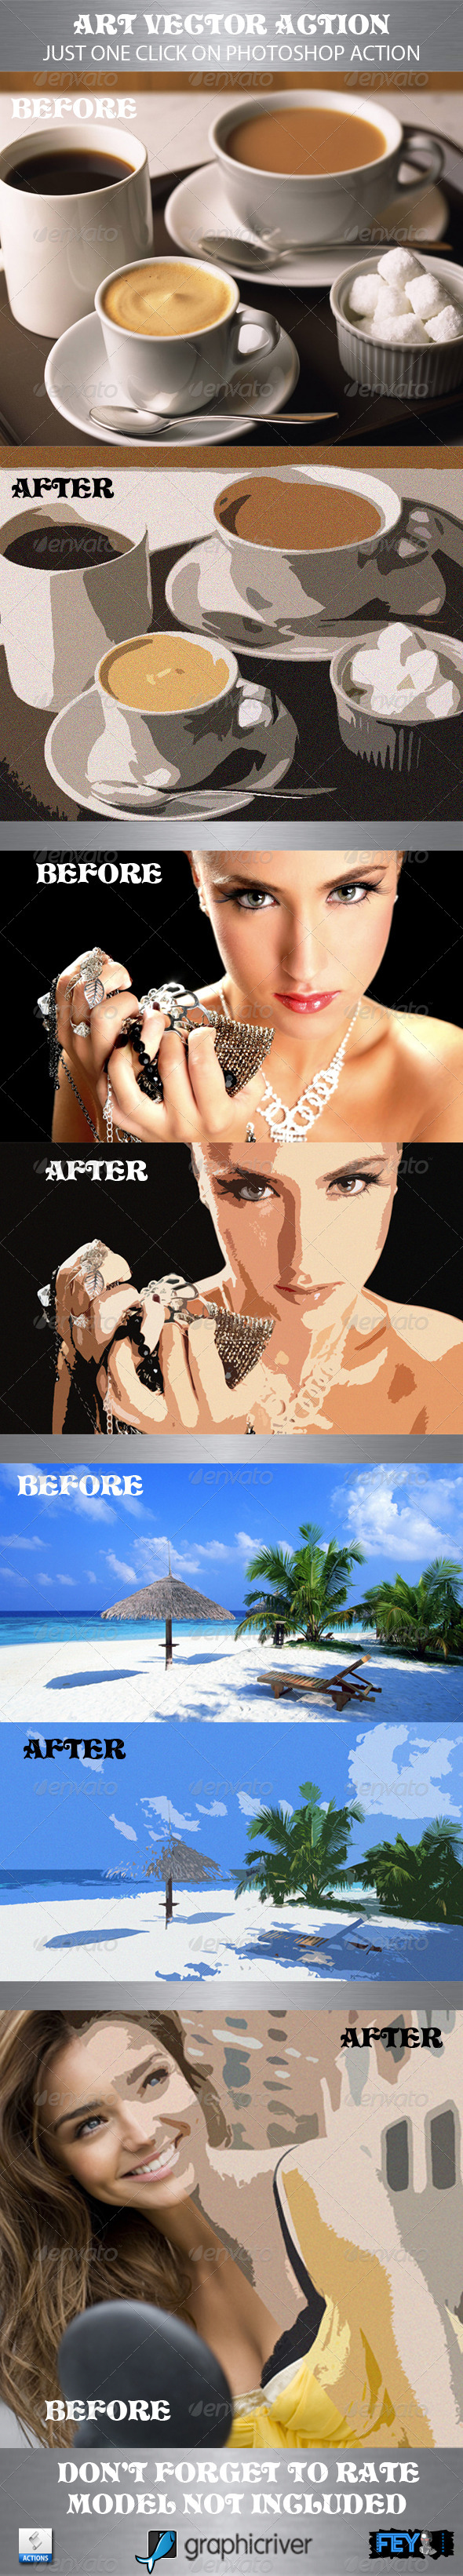 GraphicRiver Art Vector Action 5125899